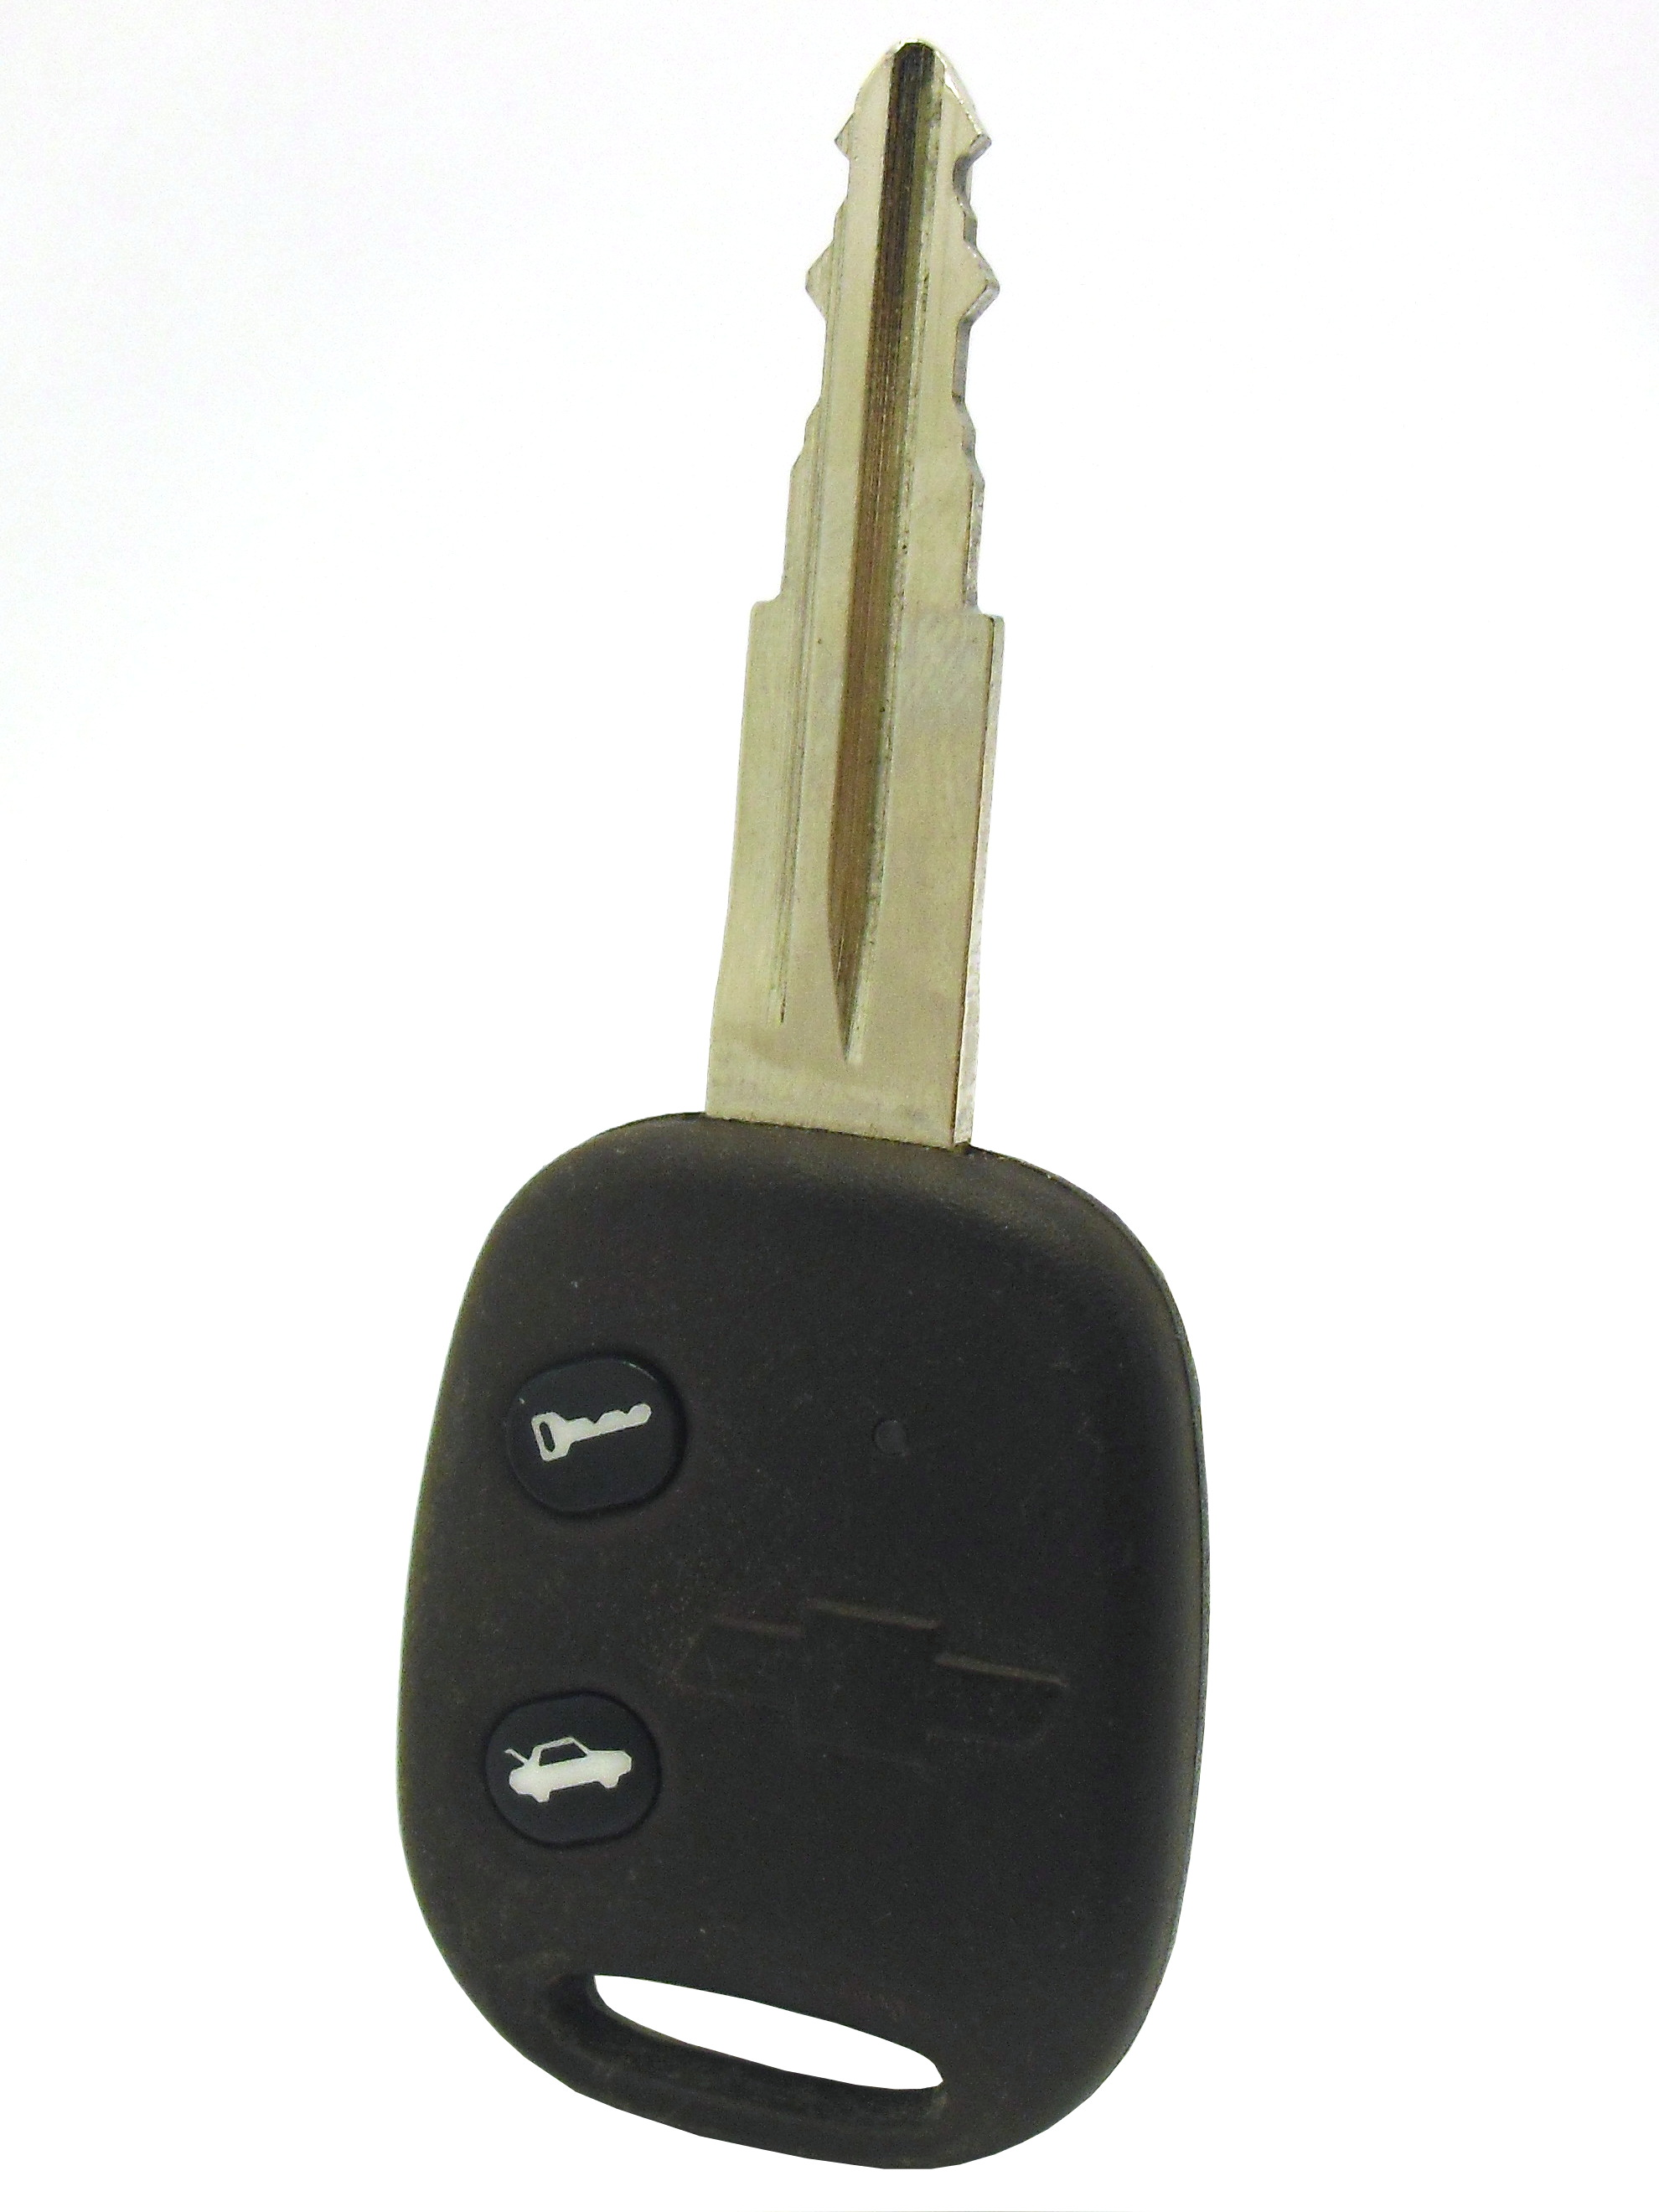 Chevrolet Aveo Transponder Key New Uncut For 2009 Chevrolet Aveo